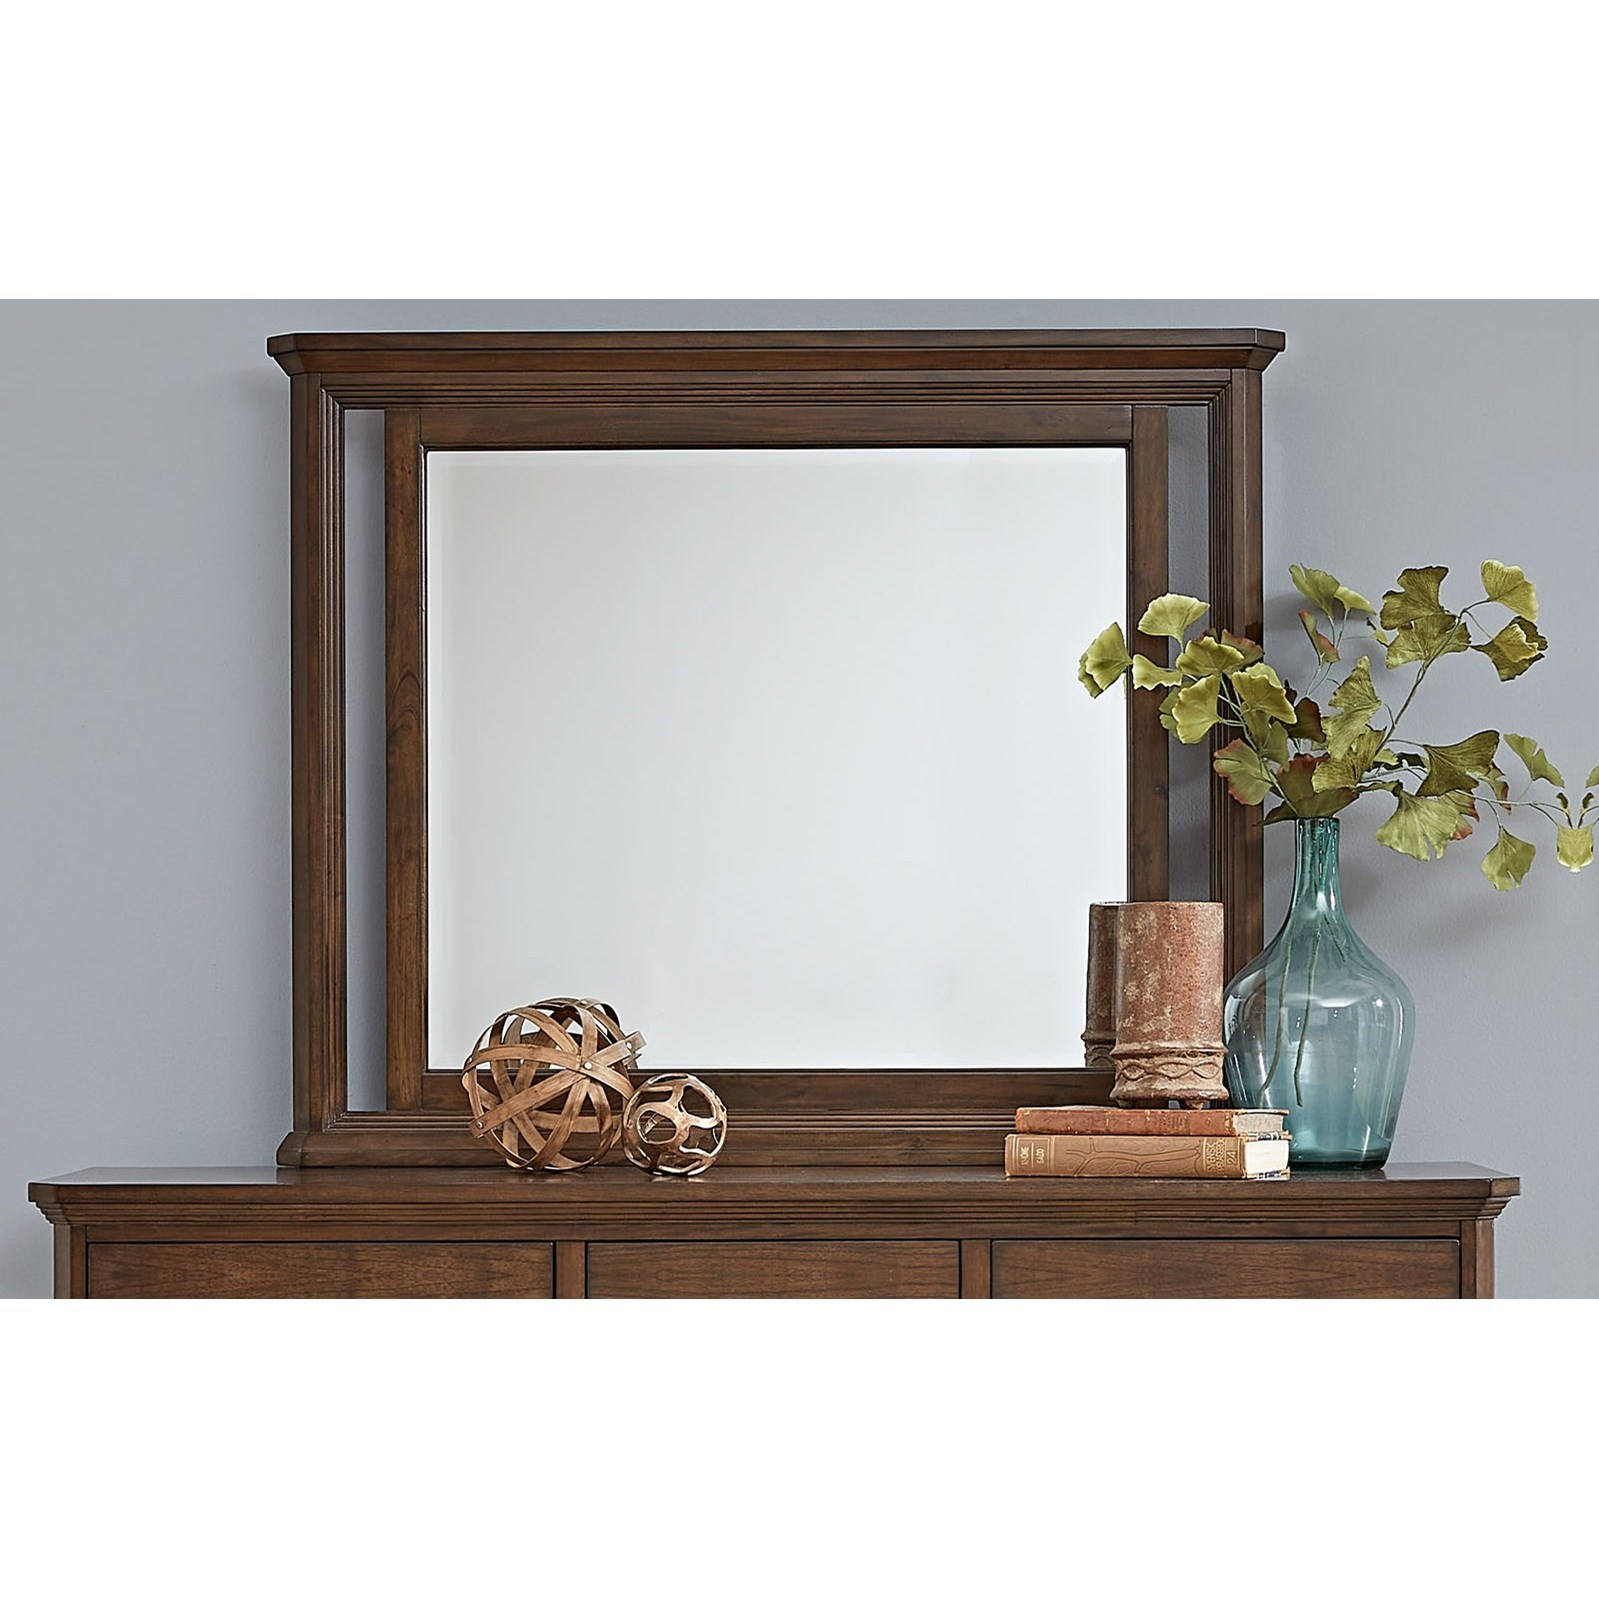 Filson Creek Landscape Mirror by AAmerica at Factory Direct Furniture